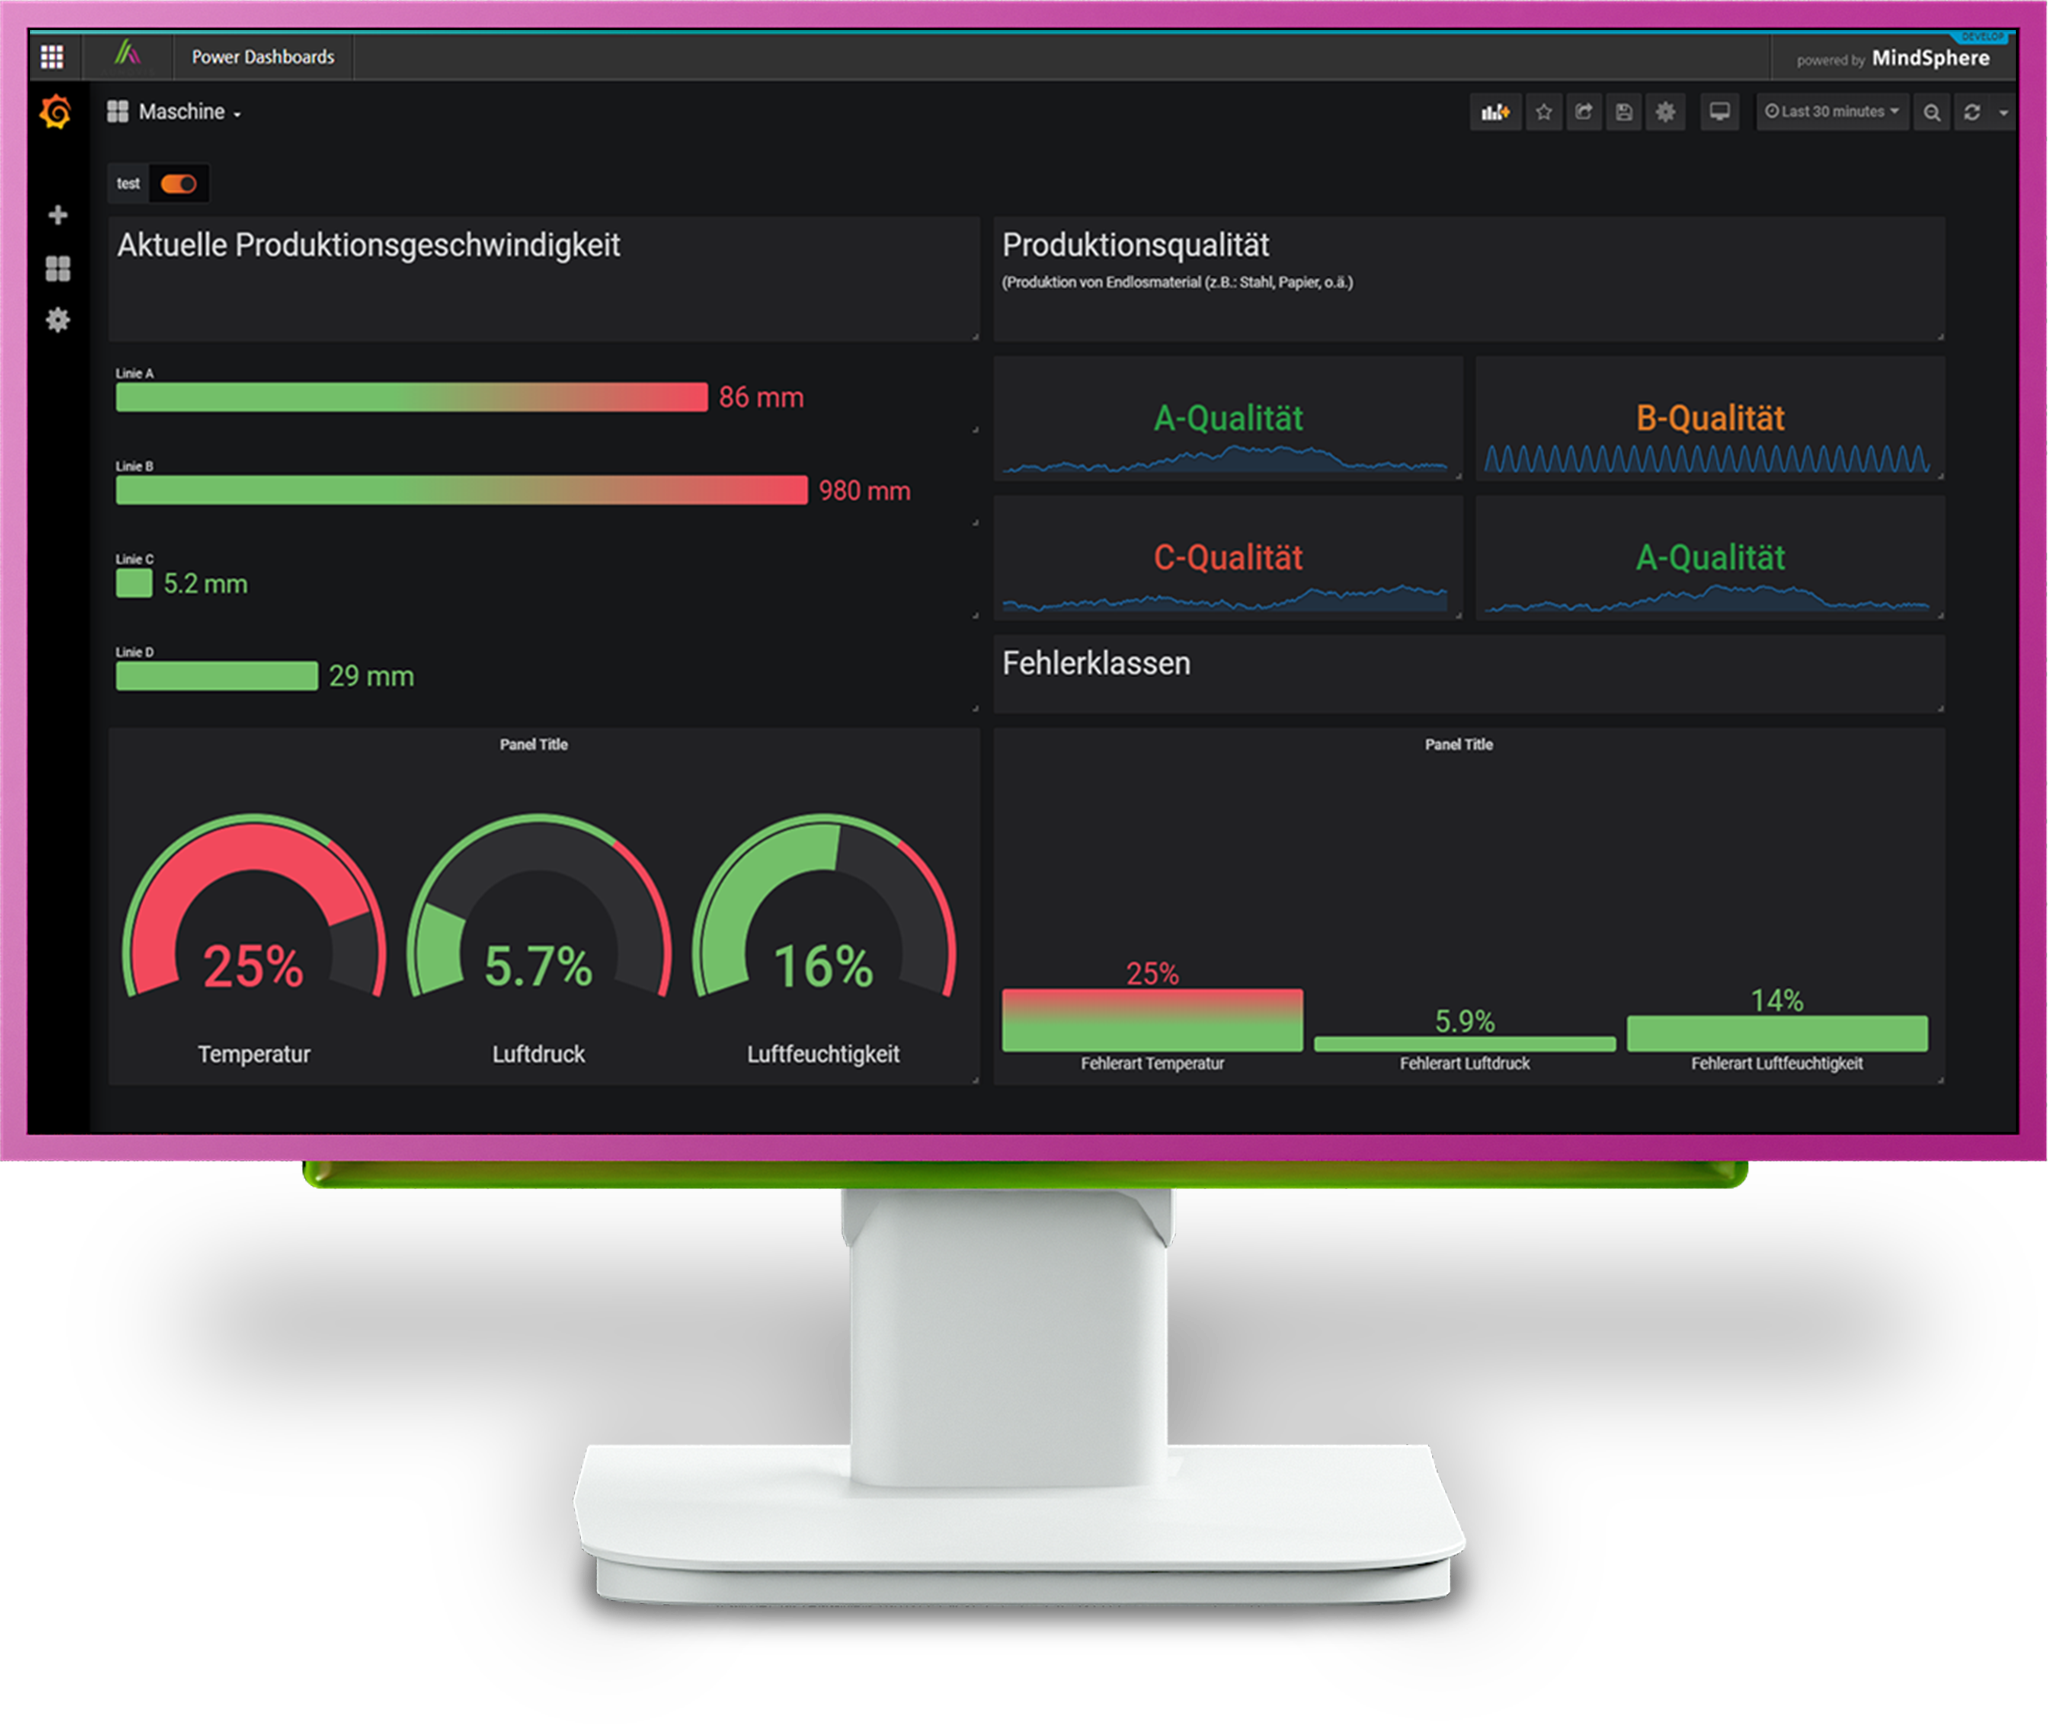 Power Dashboards Monitor Messanalyse dunkel2